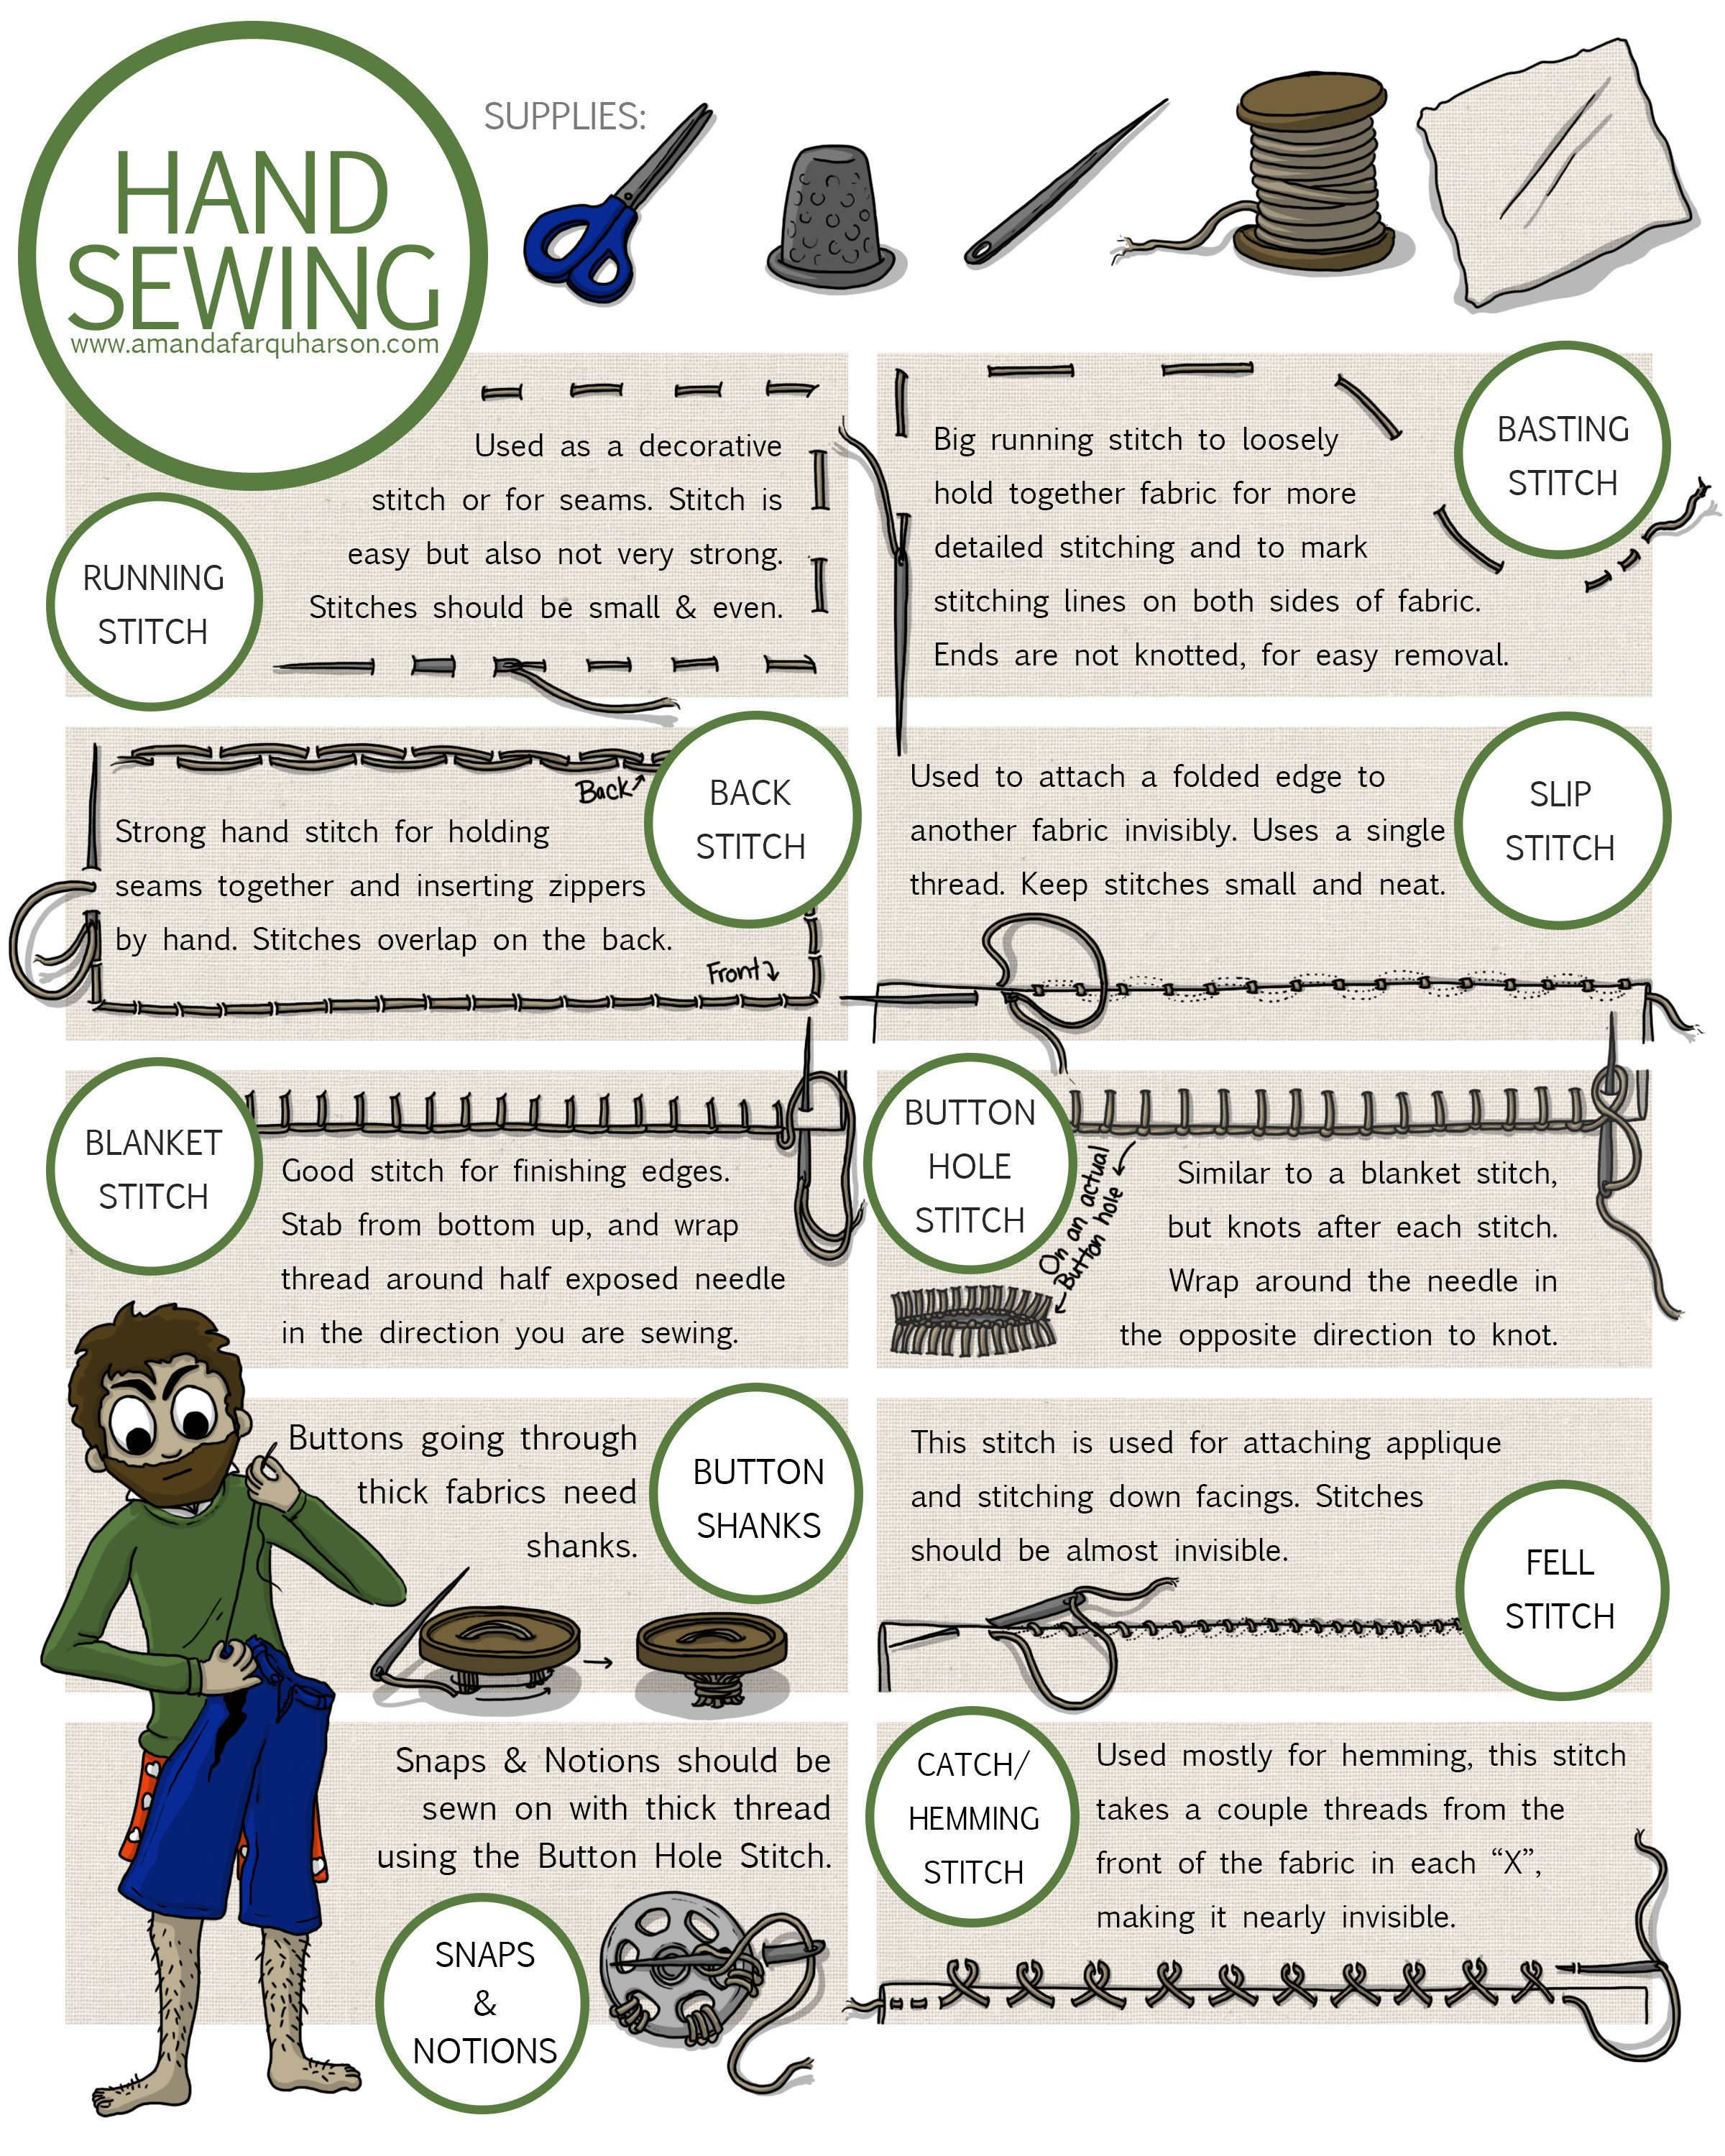 Mar 22 The 8 Most Helpful Hand Sewing Stitches